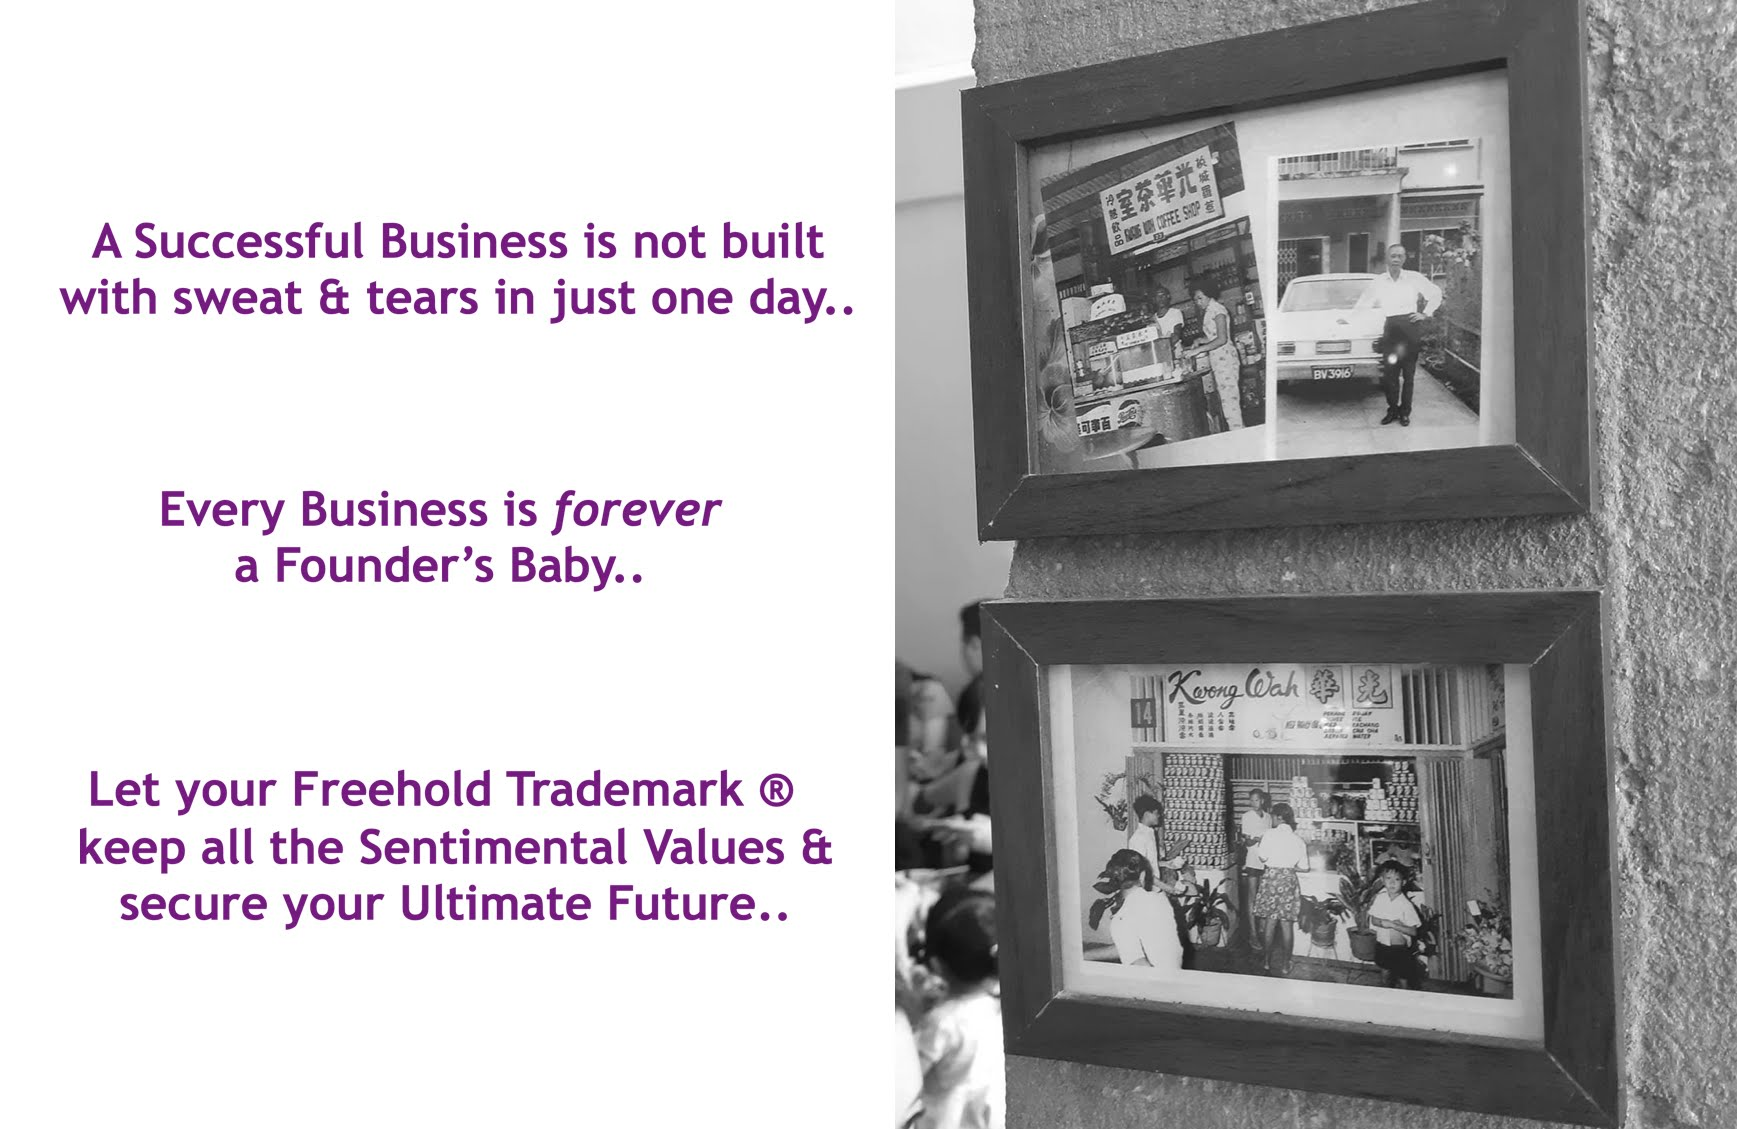 Trademark is a freehold asset